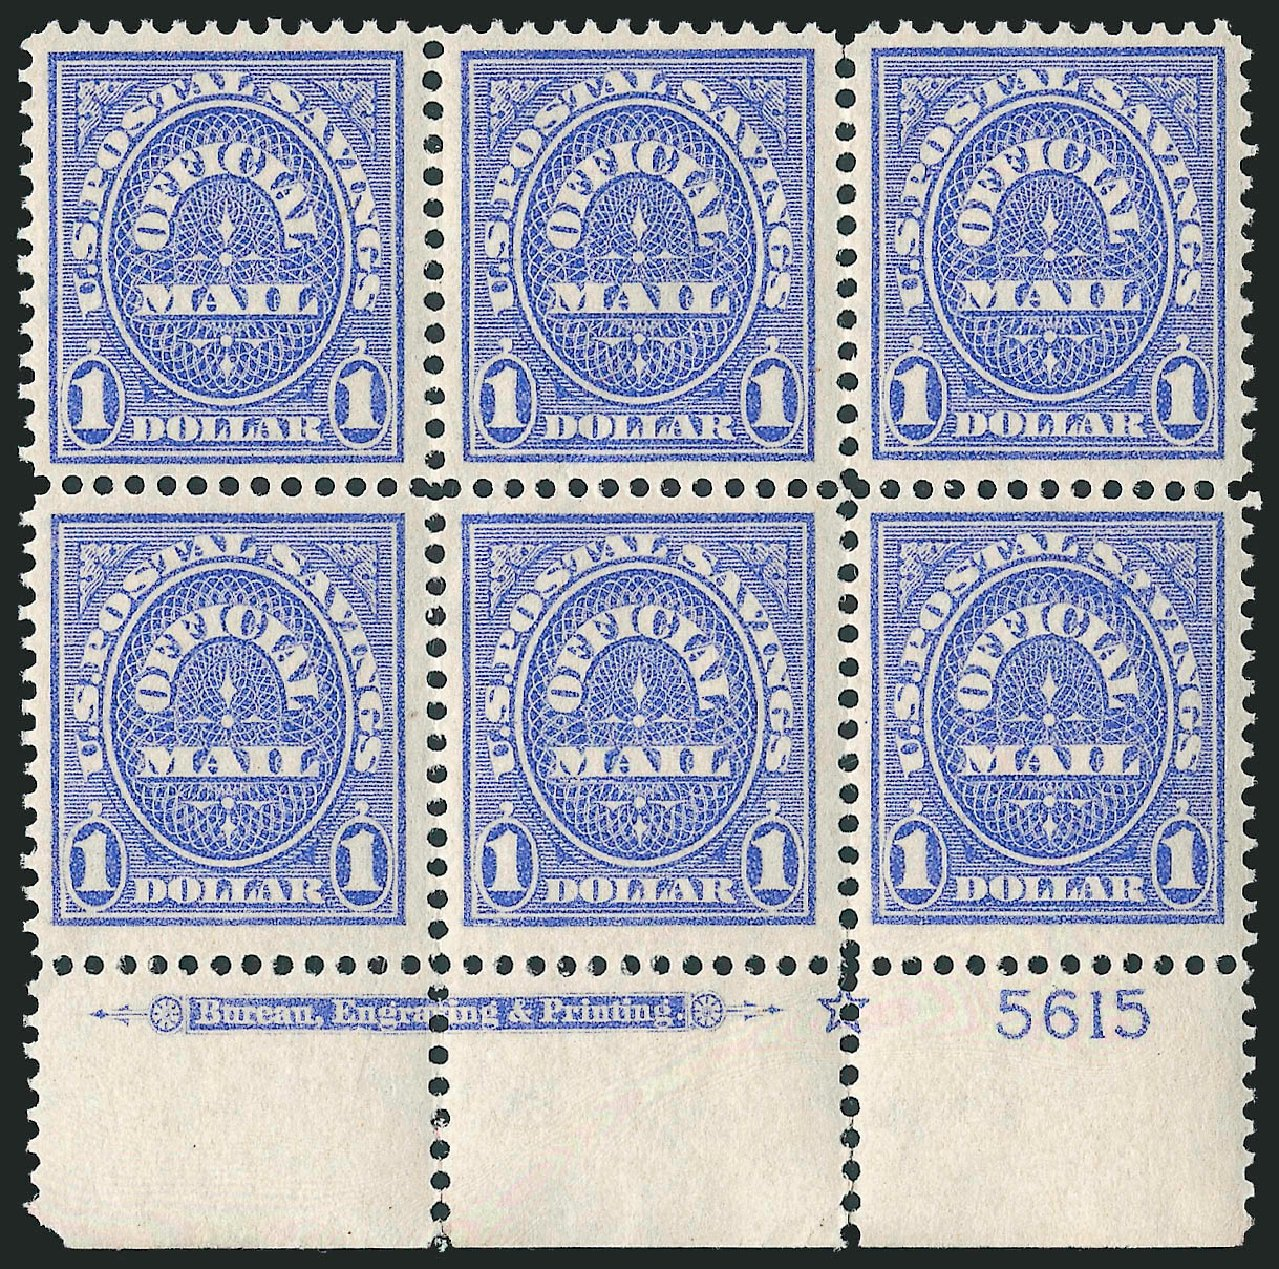 Values of US Stamps Scott Catalog #O123 - US$1.00 1911 Postal Savings Official. Robert Siegel Auction Galleries, Jun 2010, Sale 991, Lot 1481